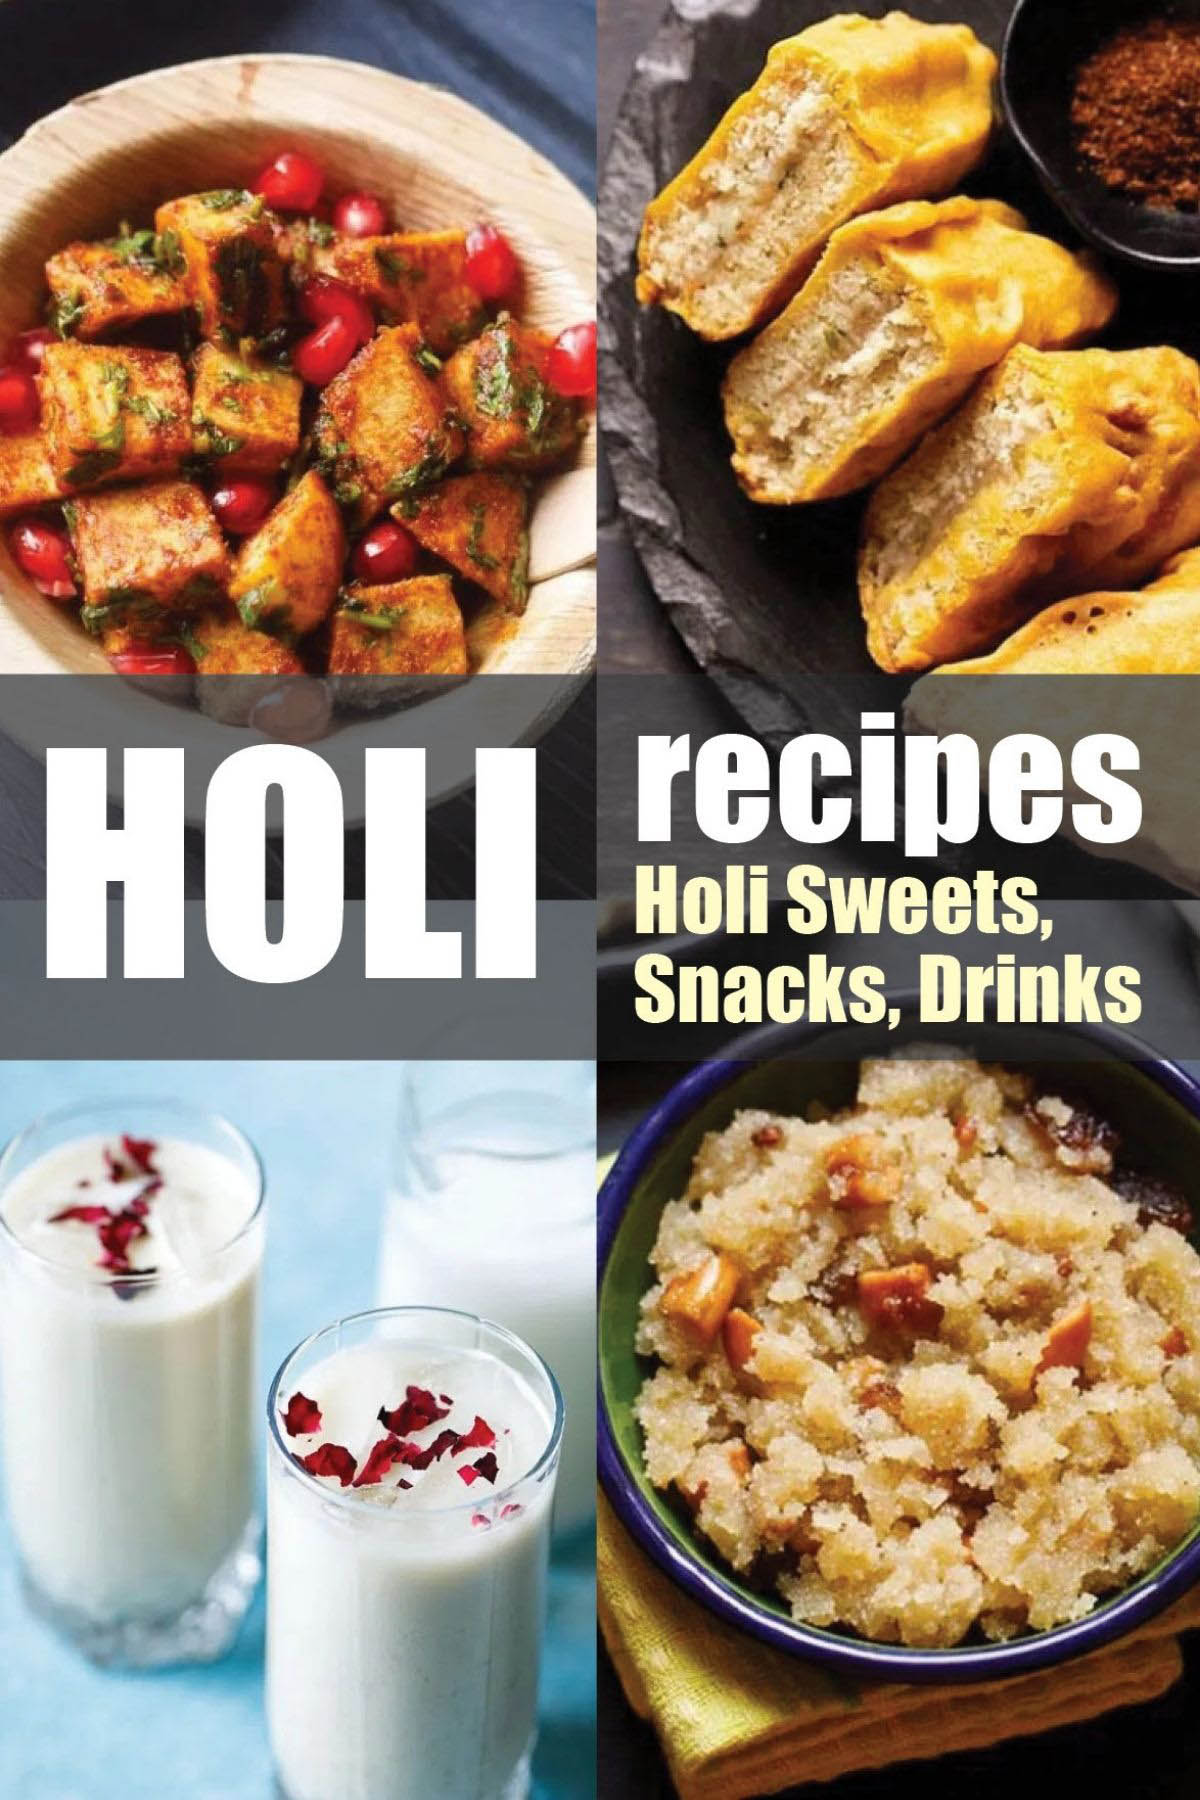 collage of holi recipes with a the text of holi recipes and holi sweets, snacks and drinks listed on image